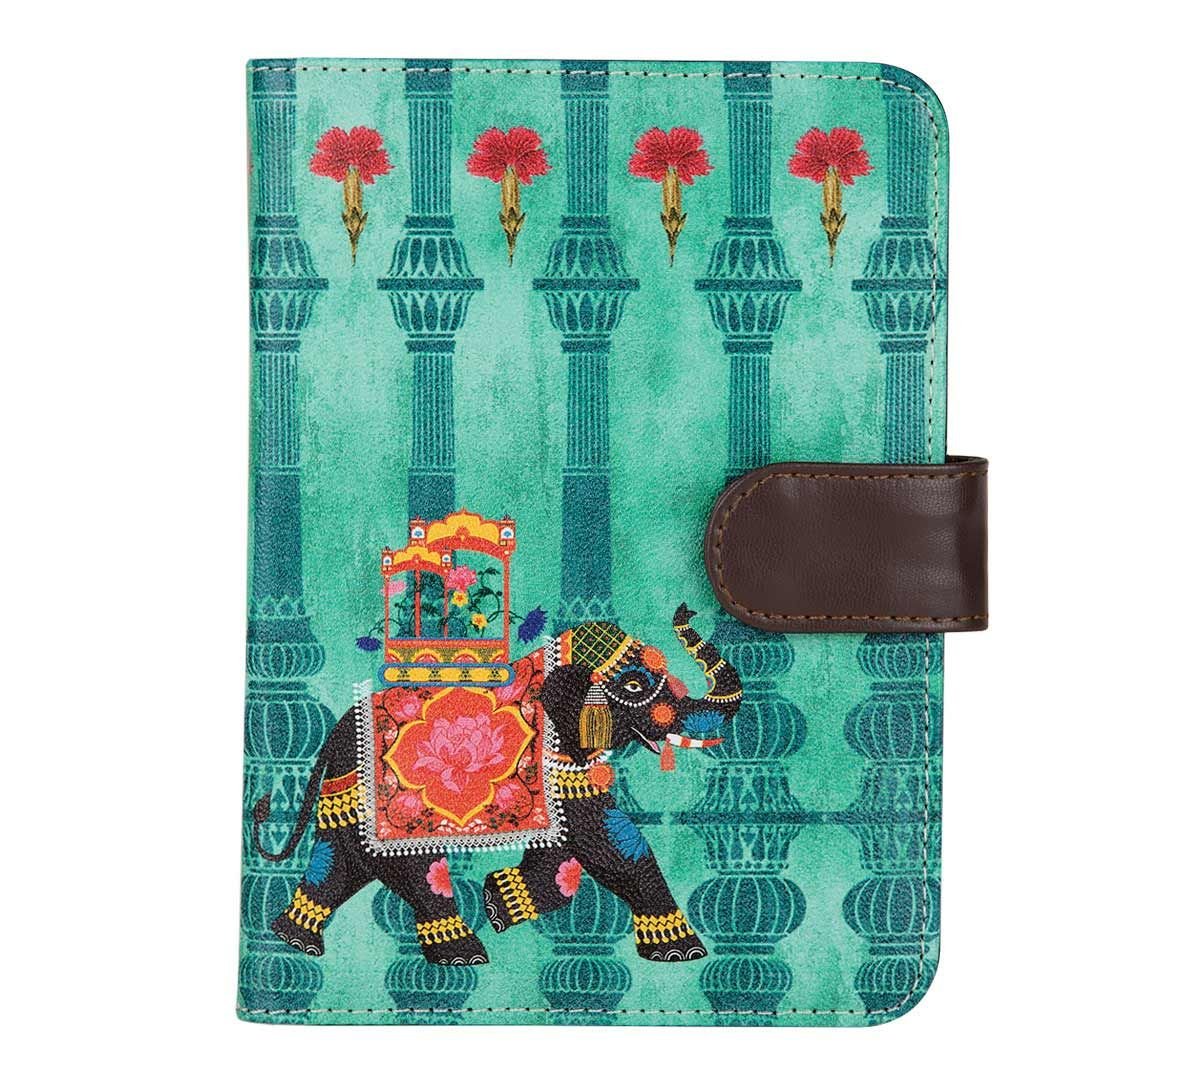 India Circus Tusker Chariot Passport Cover